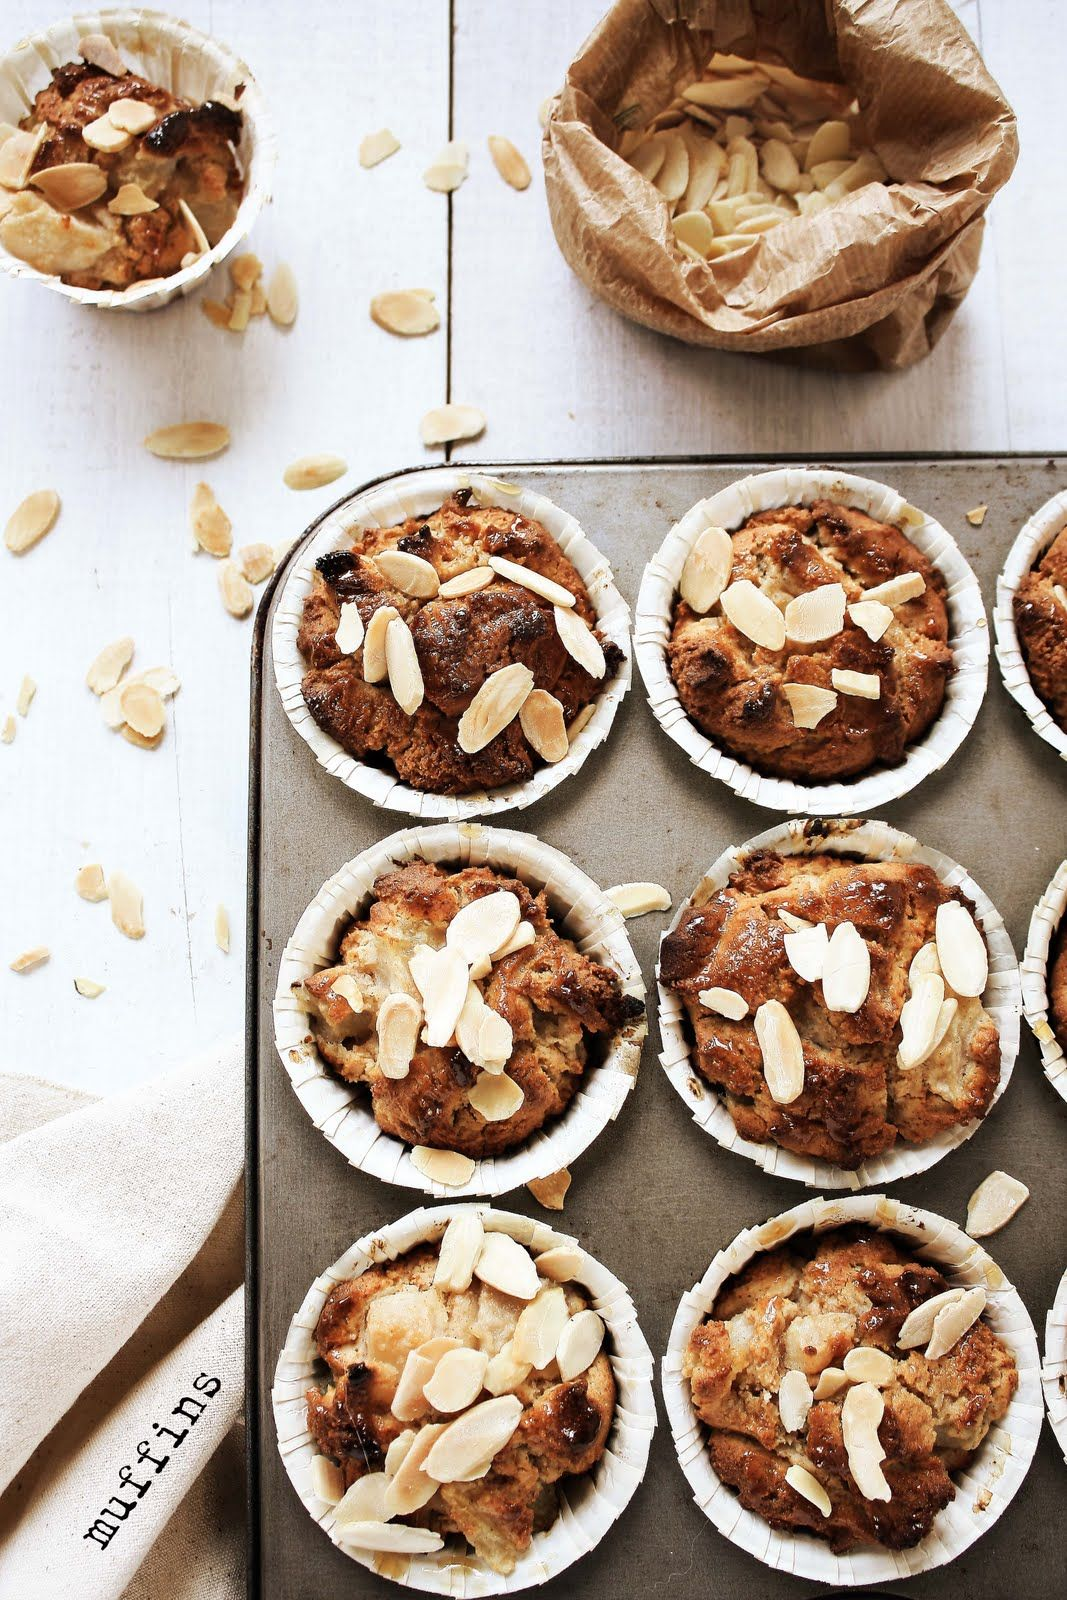 Pratos e Travessas: Muffins de pêra sem glúten # Gluten free pear muffins | Food, photography and stories